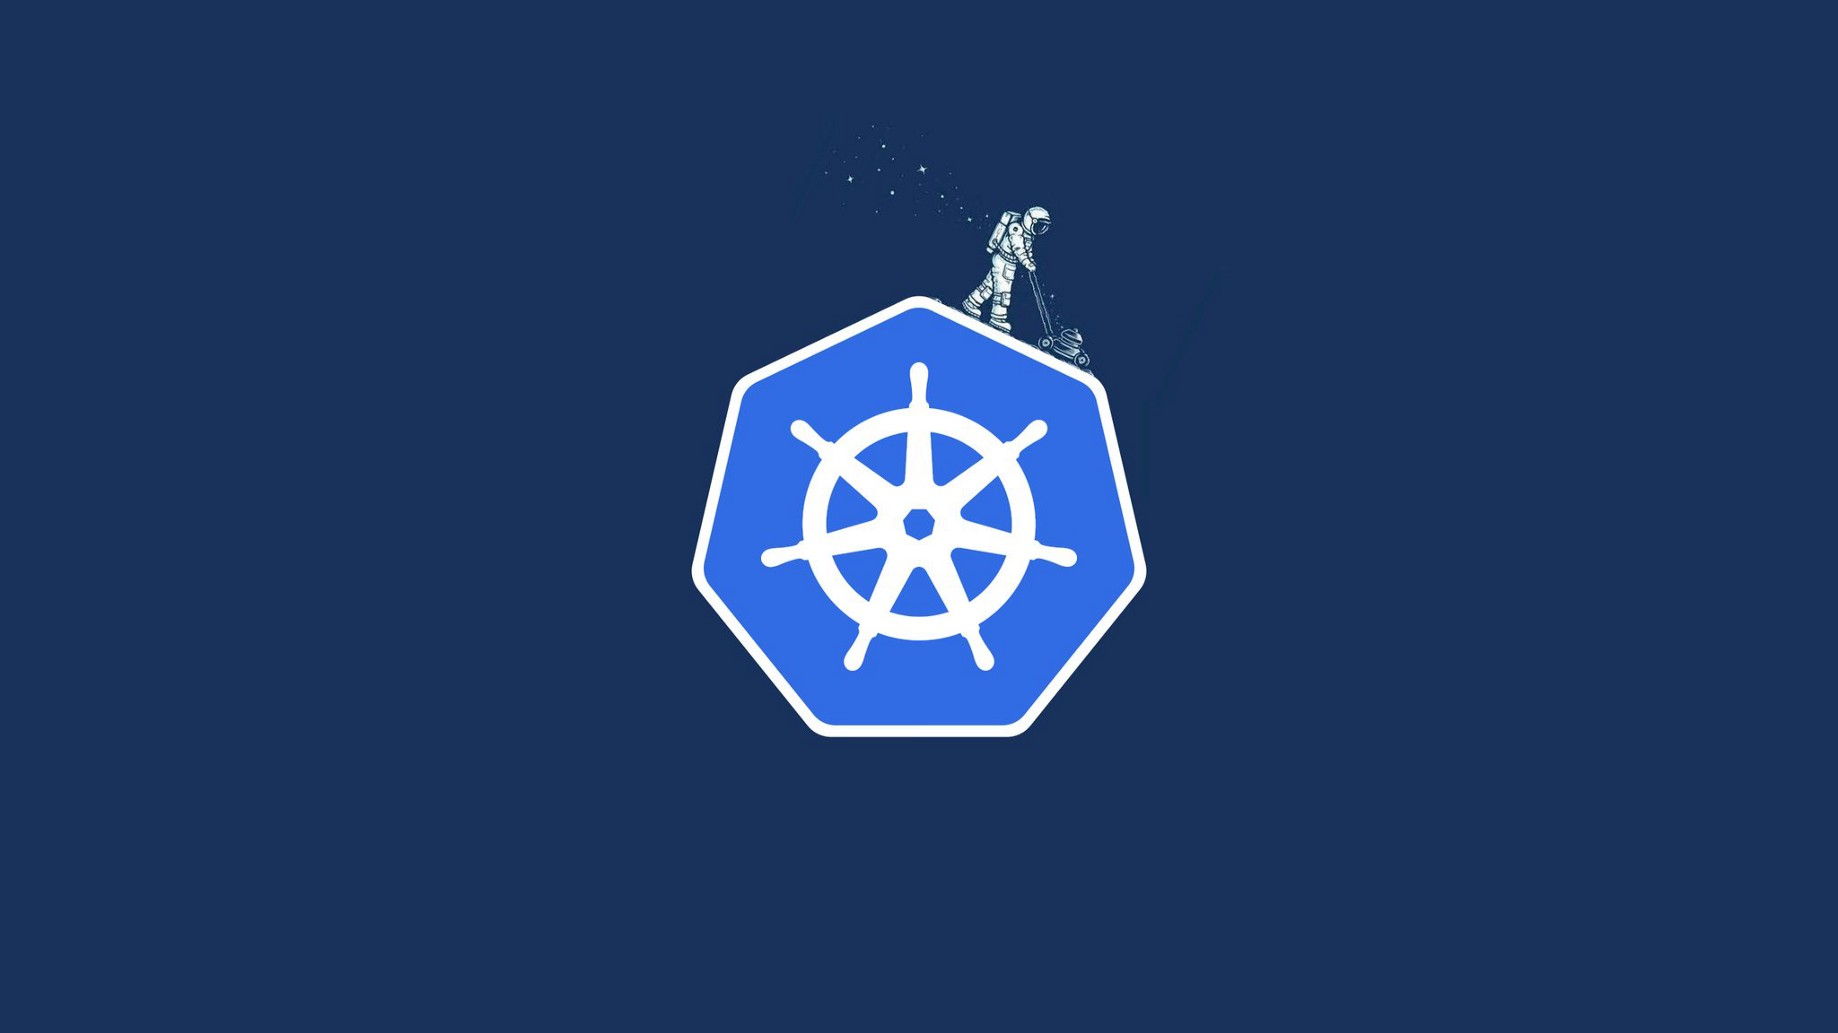 Save costs in your Kubernetes cluster with 5 open source tools